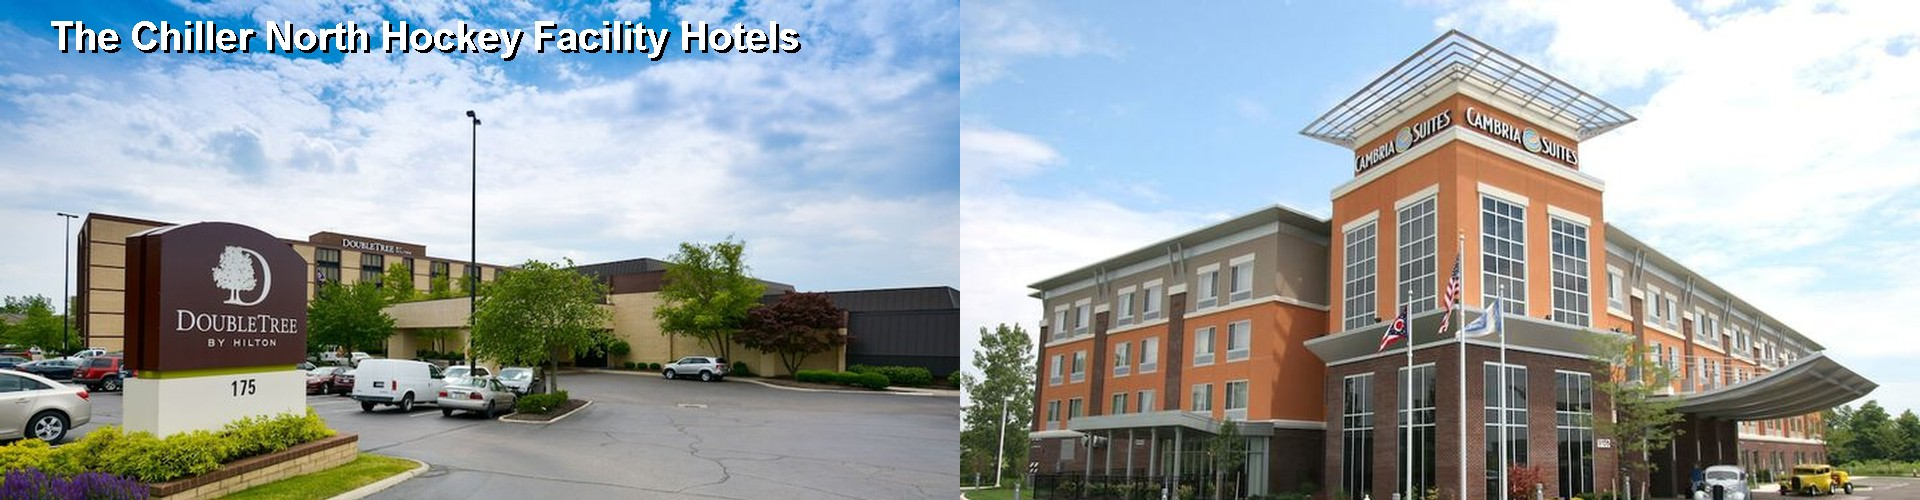 5 Best Hotels near The Chiller North Hockey Facility